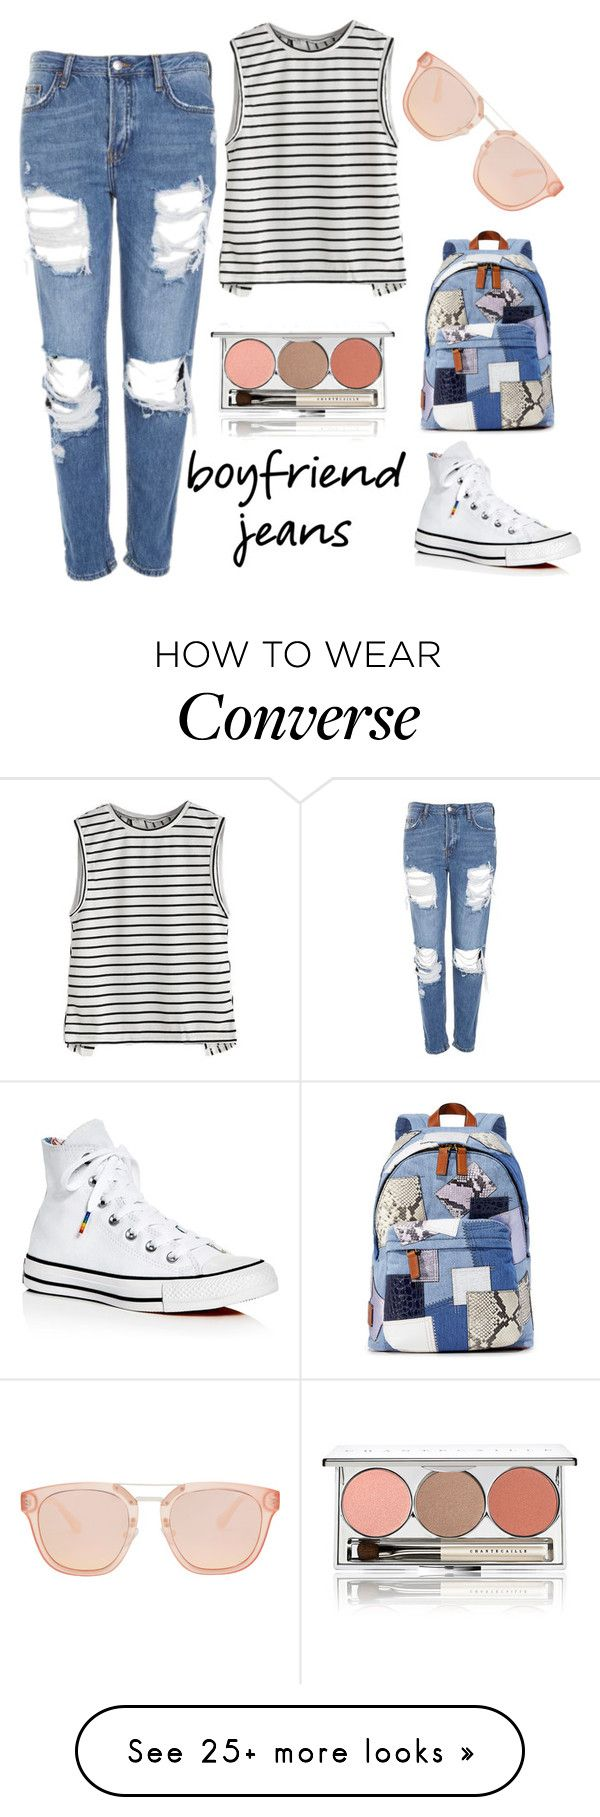 """Boyfriend Jeans"" by muskrosevintage on Polyvore featuring Topshop, Marc Jacobs, Chantecaille and Converse"